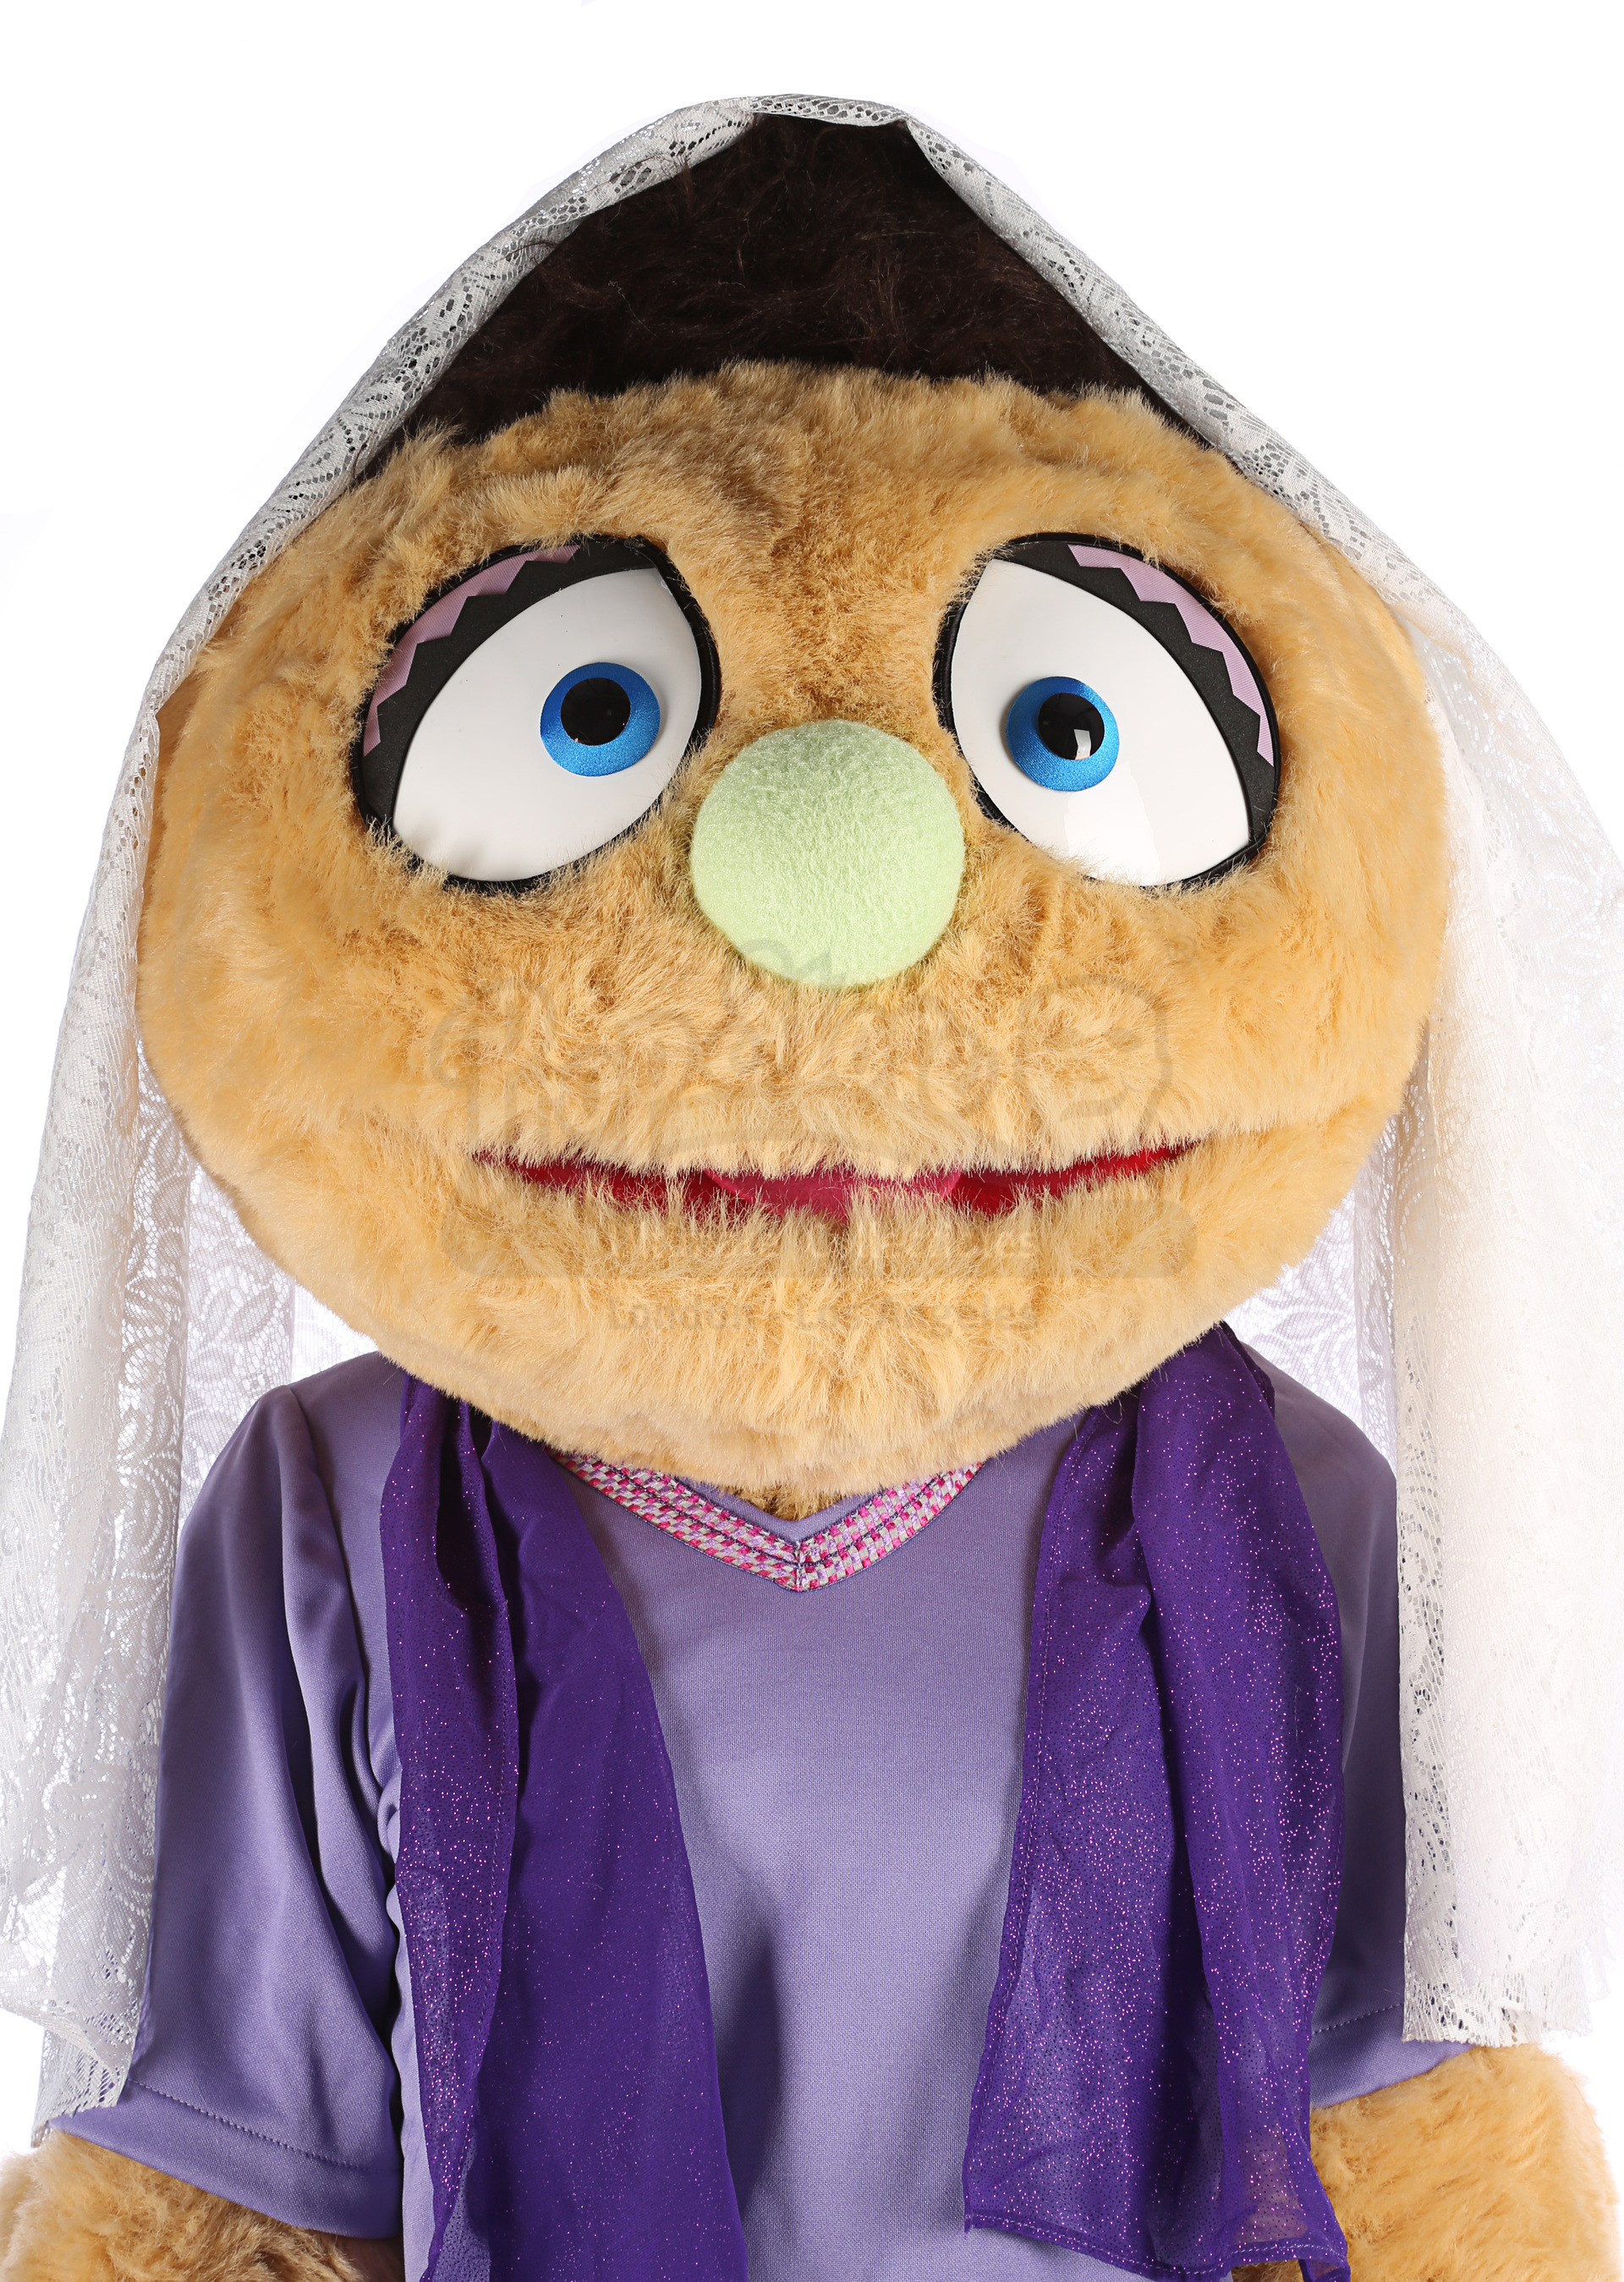 AVENUE Q (STAGE SHOW) - Wedding Puppet Collection: Kate Monster, Nicky, Princeton, Rod, Kate Monster - Image 19 of 23